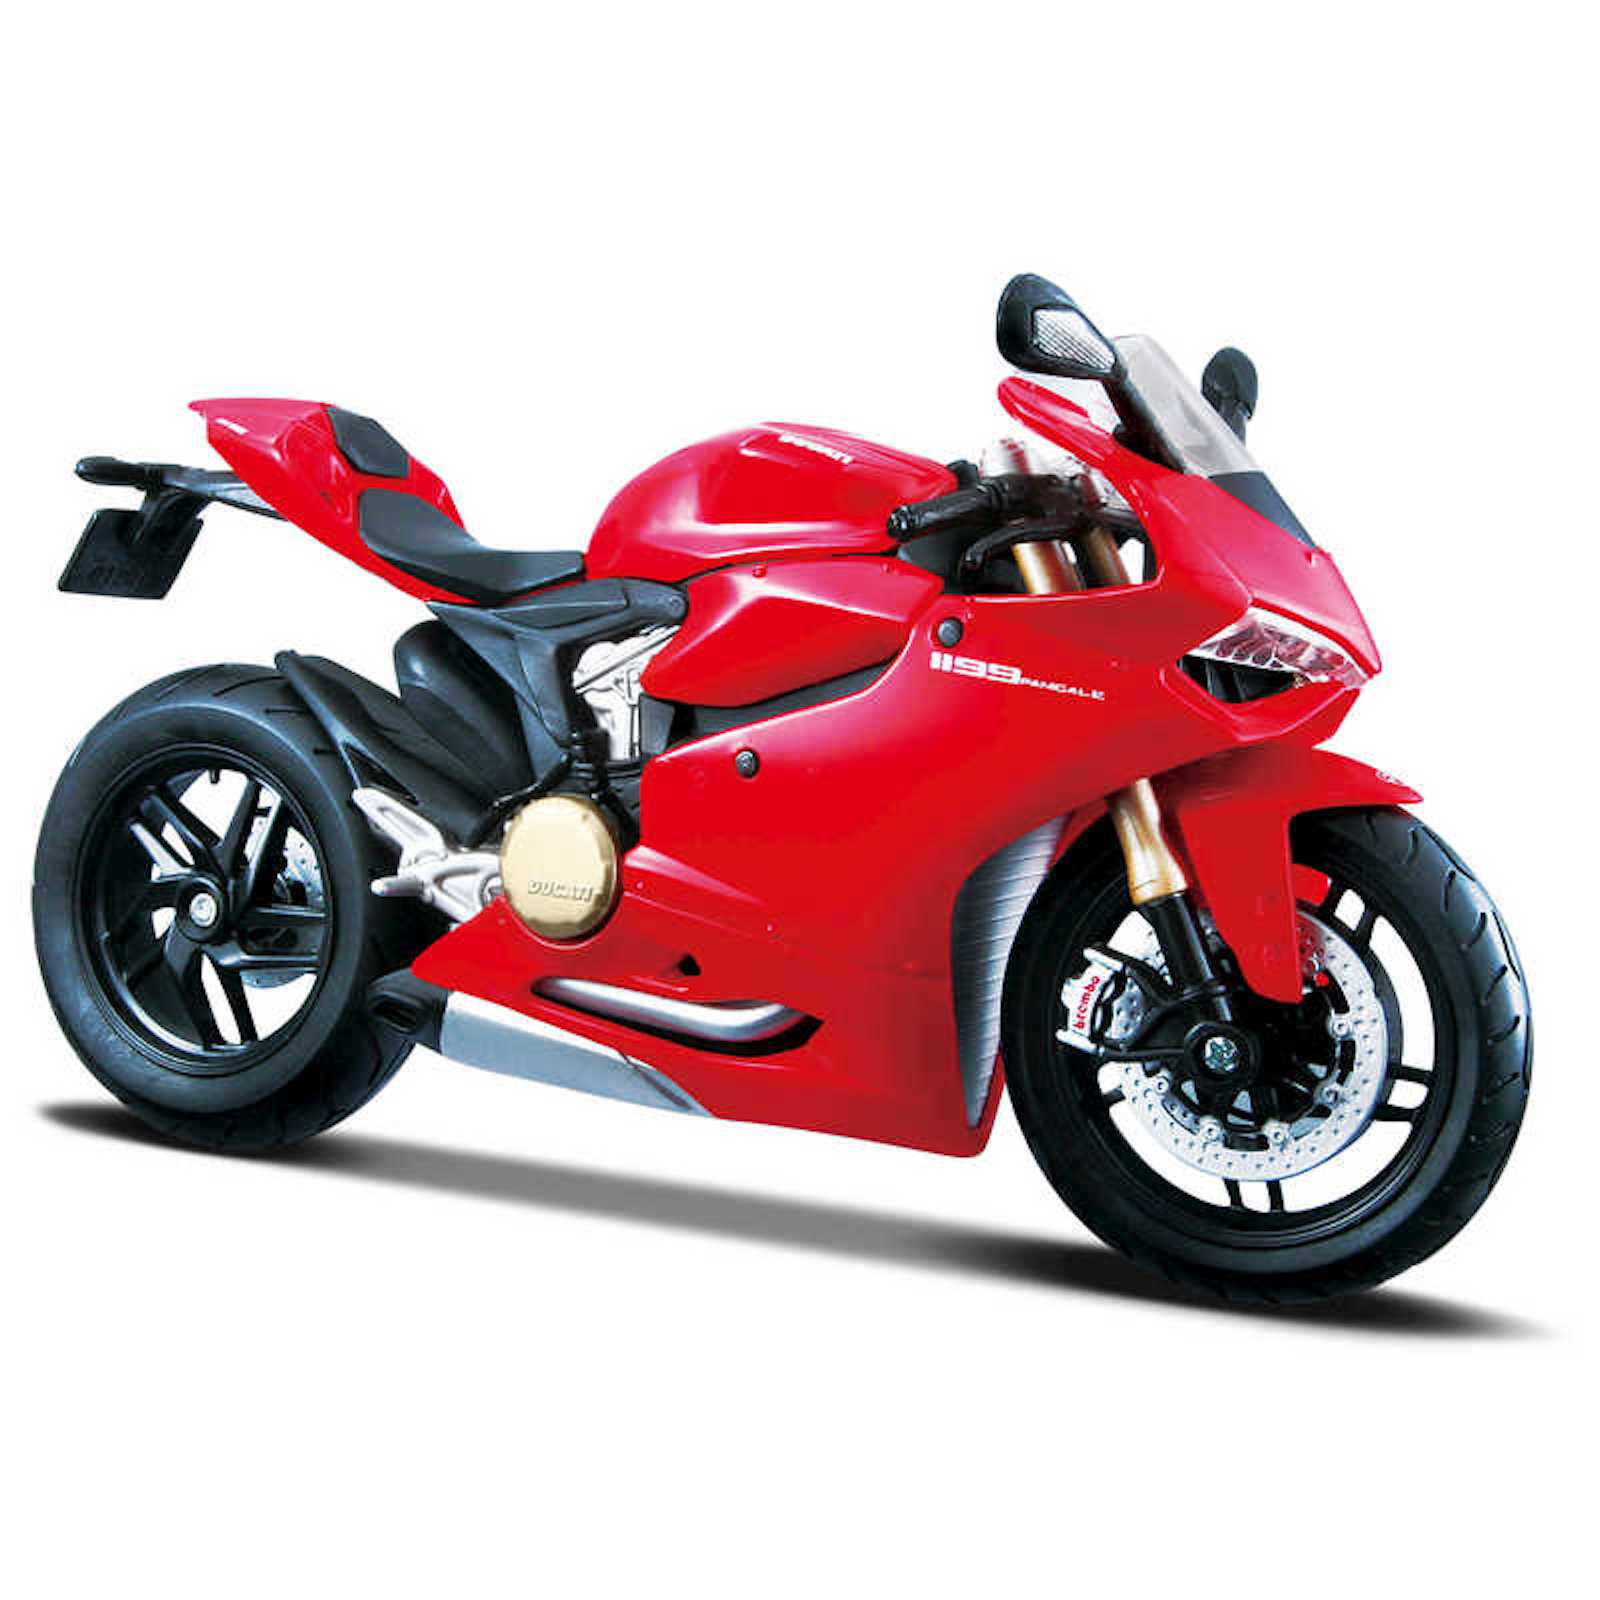 Ducati Panigale 1199 Assembly Line Kit 1:12 Scale Model Motorcycle Collectors Owners Present Gift